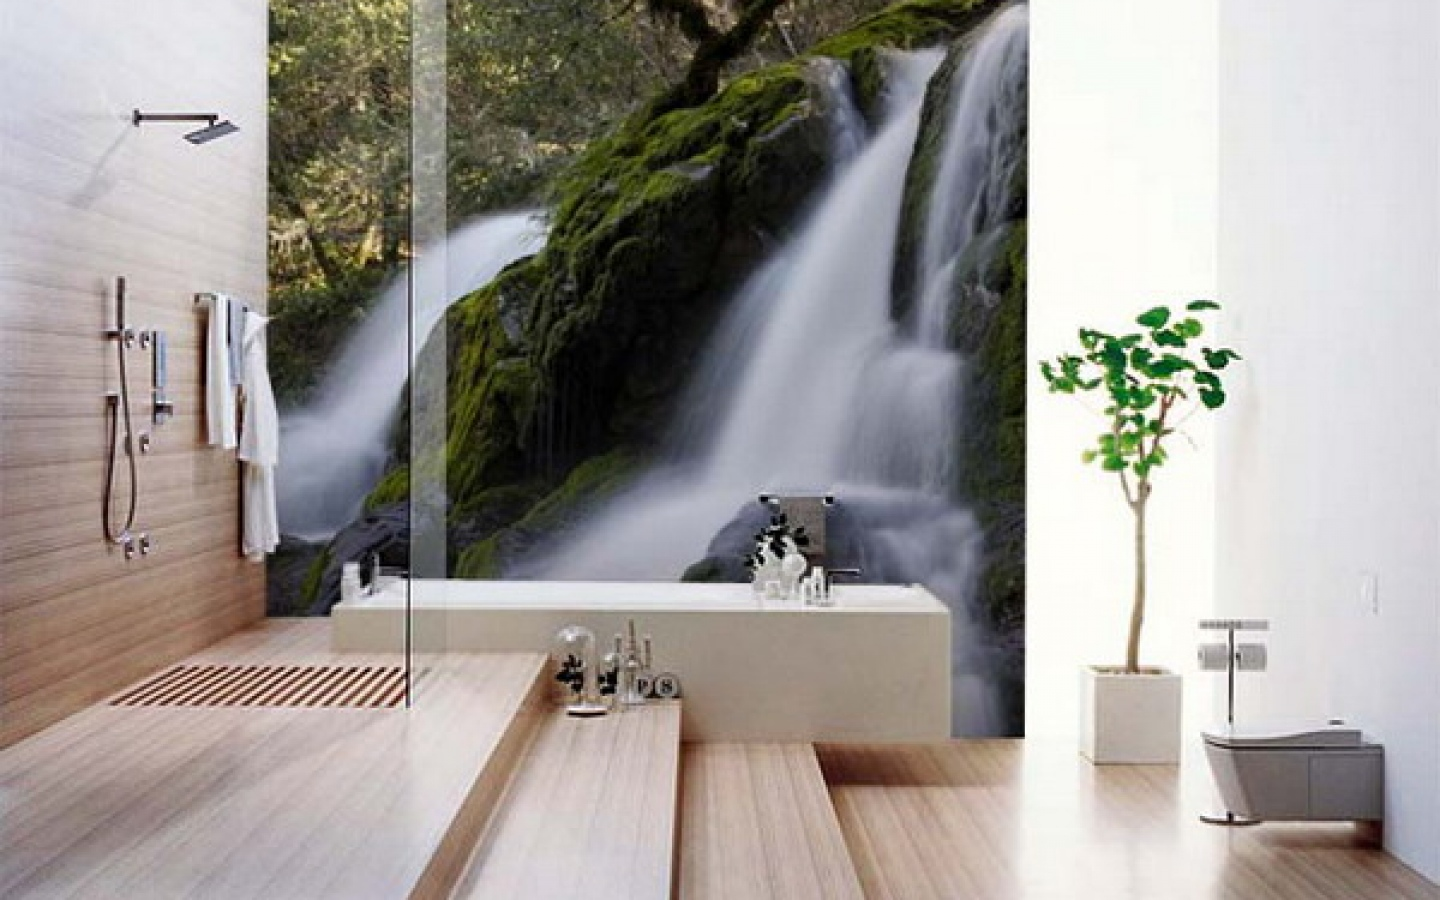 best-bathroom-wall-murals-ideas-and-room-where-you-can-put-it-bathroom-ideas-bathroom-bathroom-wall.com-mural-murals-murals-ideas-room-room-wall-room-wall-mural-toilet-wall-ideas-wall-wall-best-wall